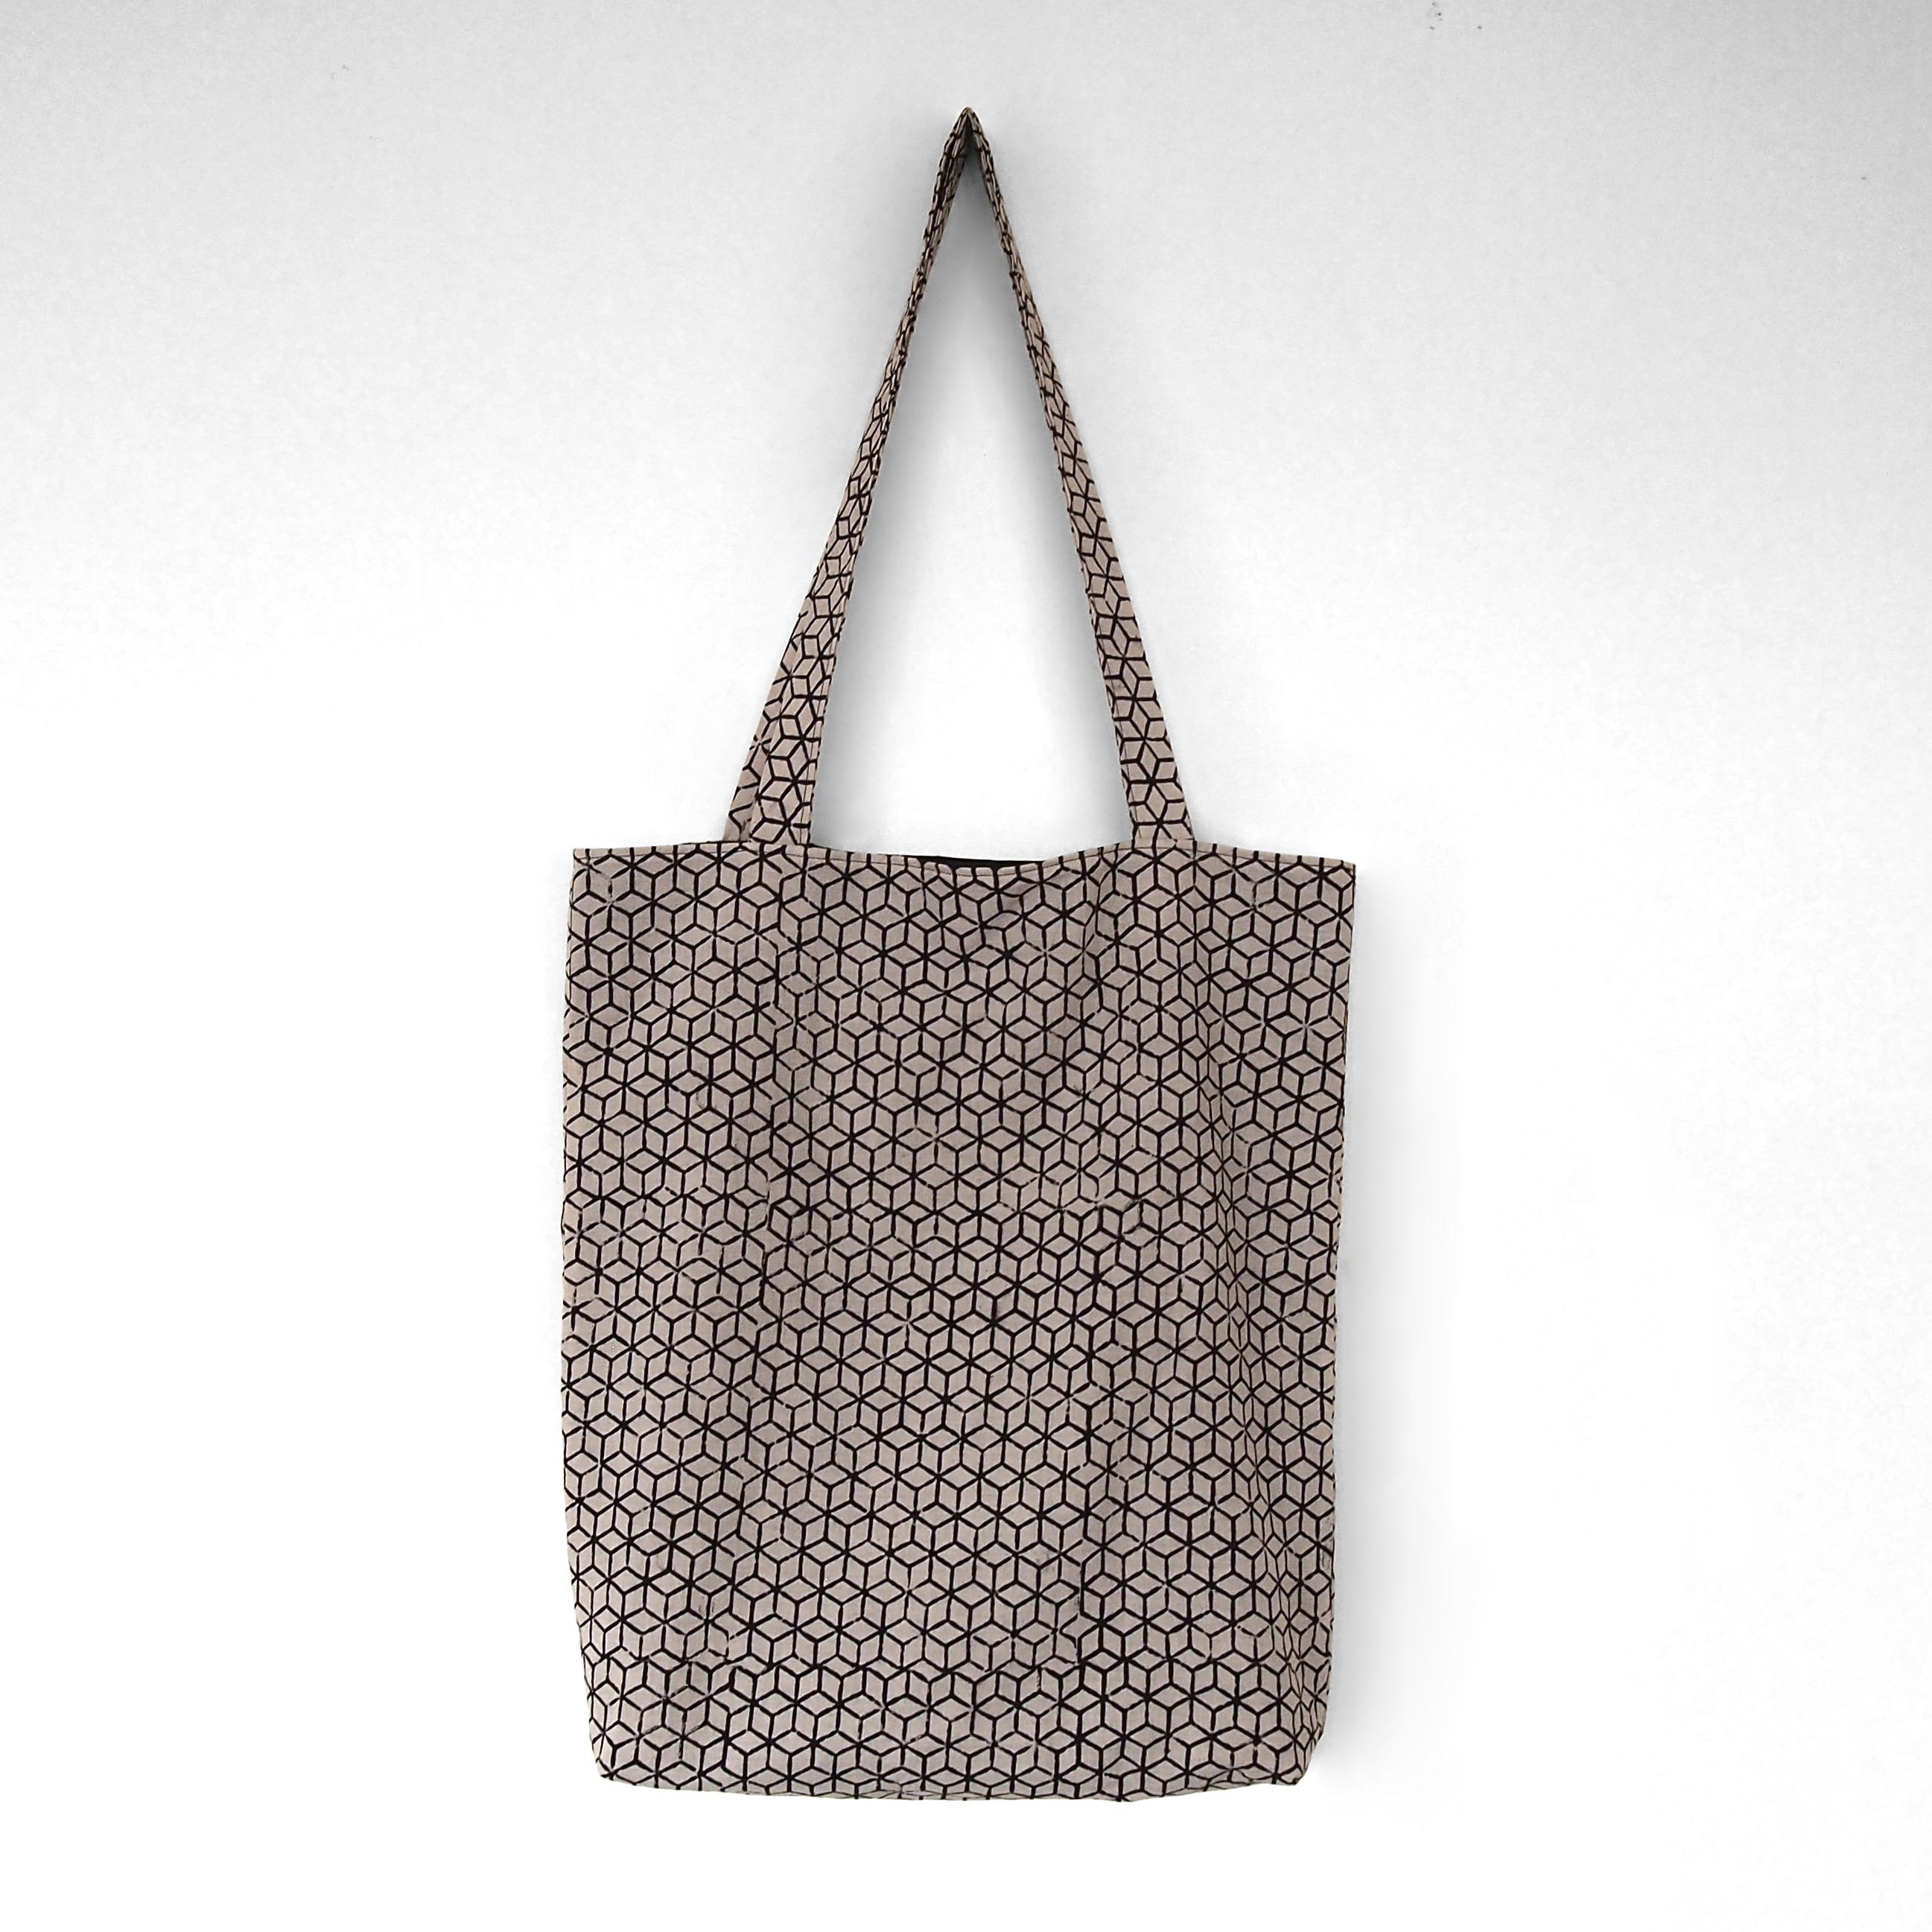 block printed cotton tote bag, natural dye, beige, black tumbling block, lined with black cotton, closed